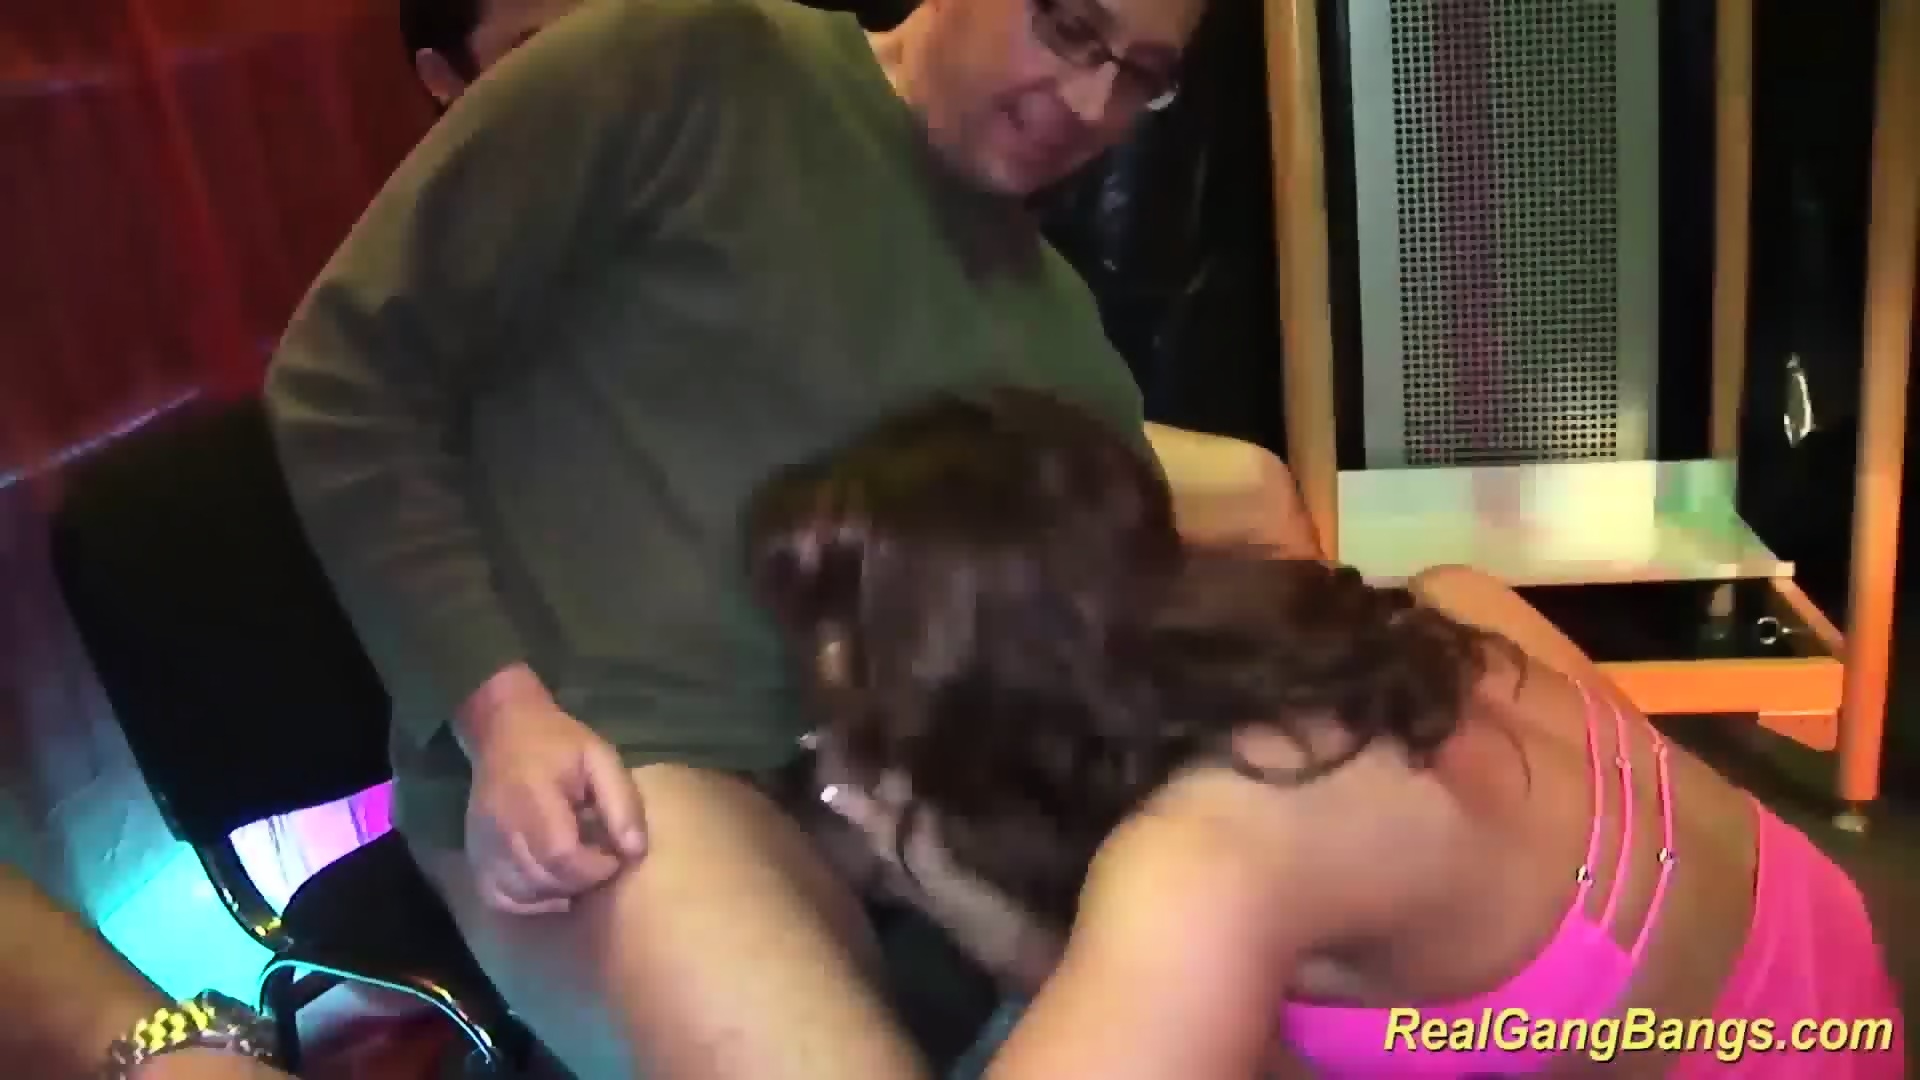 pity, that chubby cumshot vids completely agree with